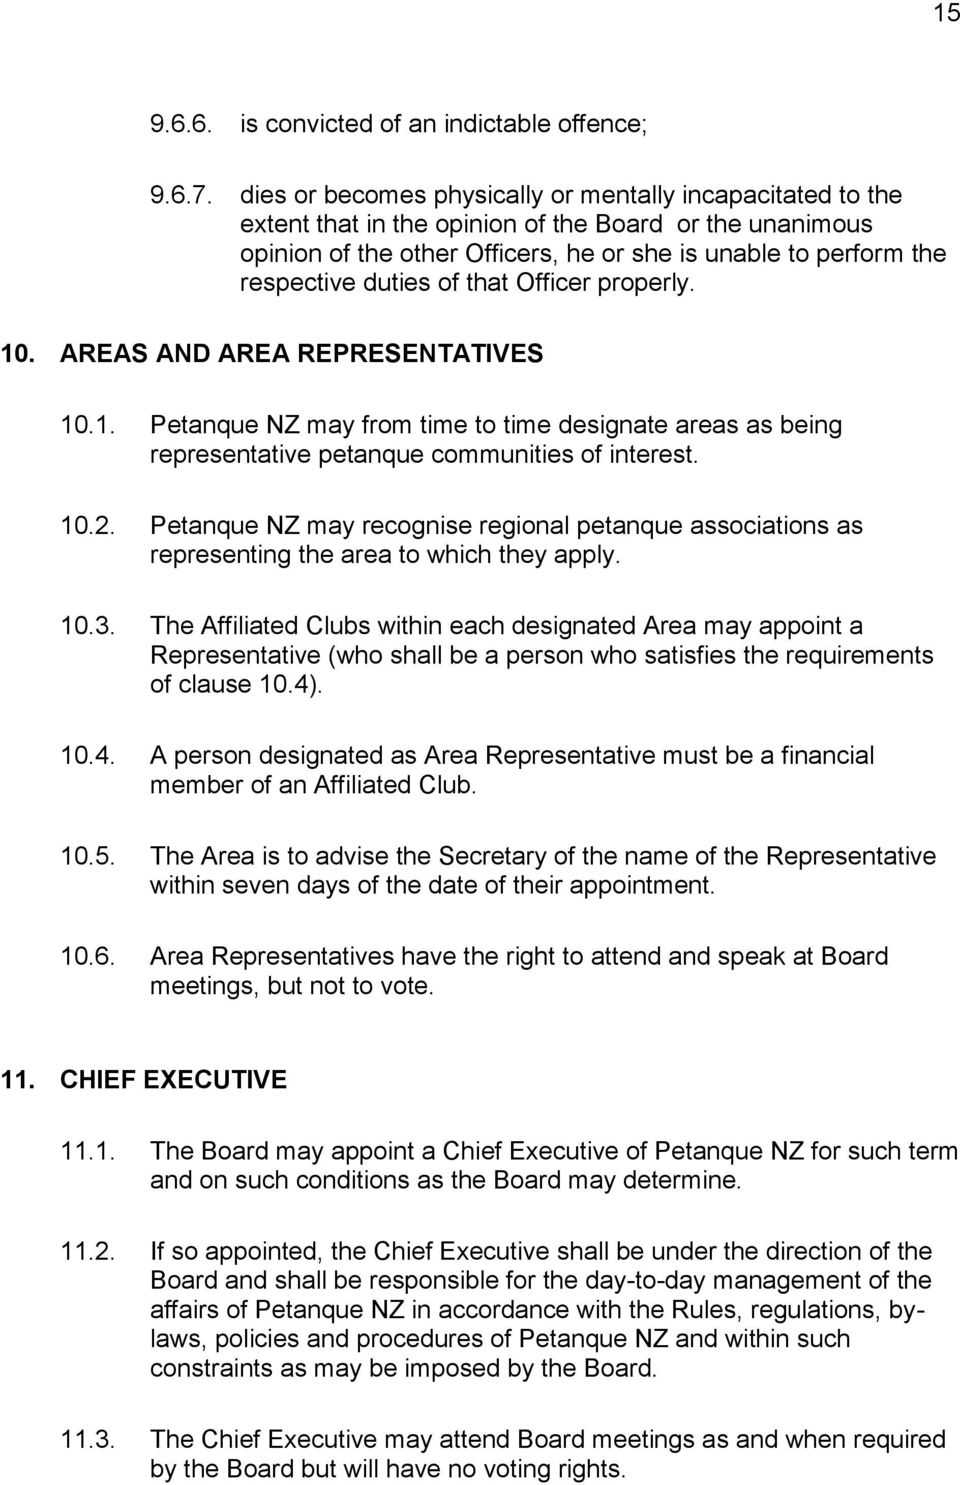 duties of that Officer properly. 10. AREAS AND AREA REPRESENTATIVES 10.1. Petanque NZ may from time to time designate areas as being representative petanque communities of interest. 10.2.